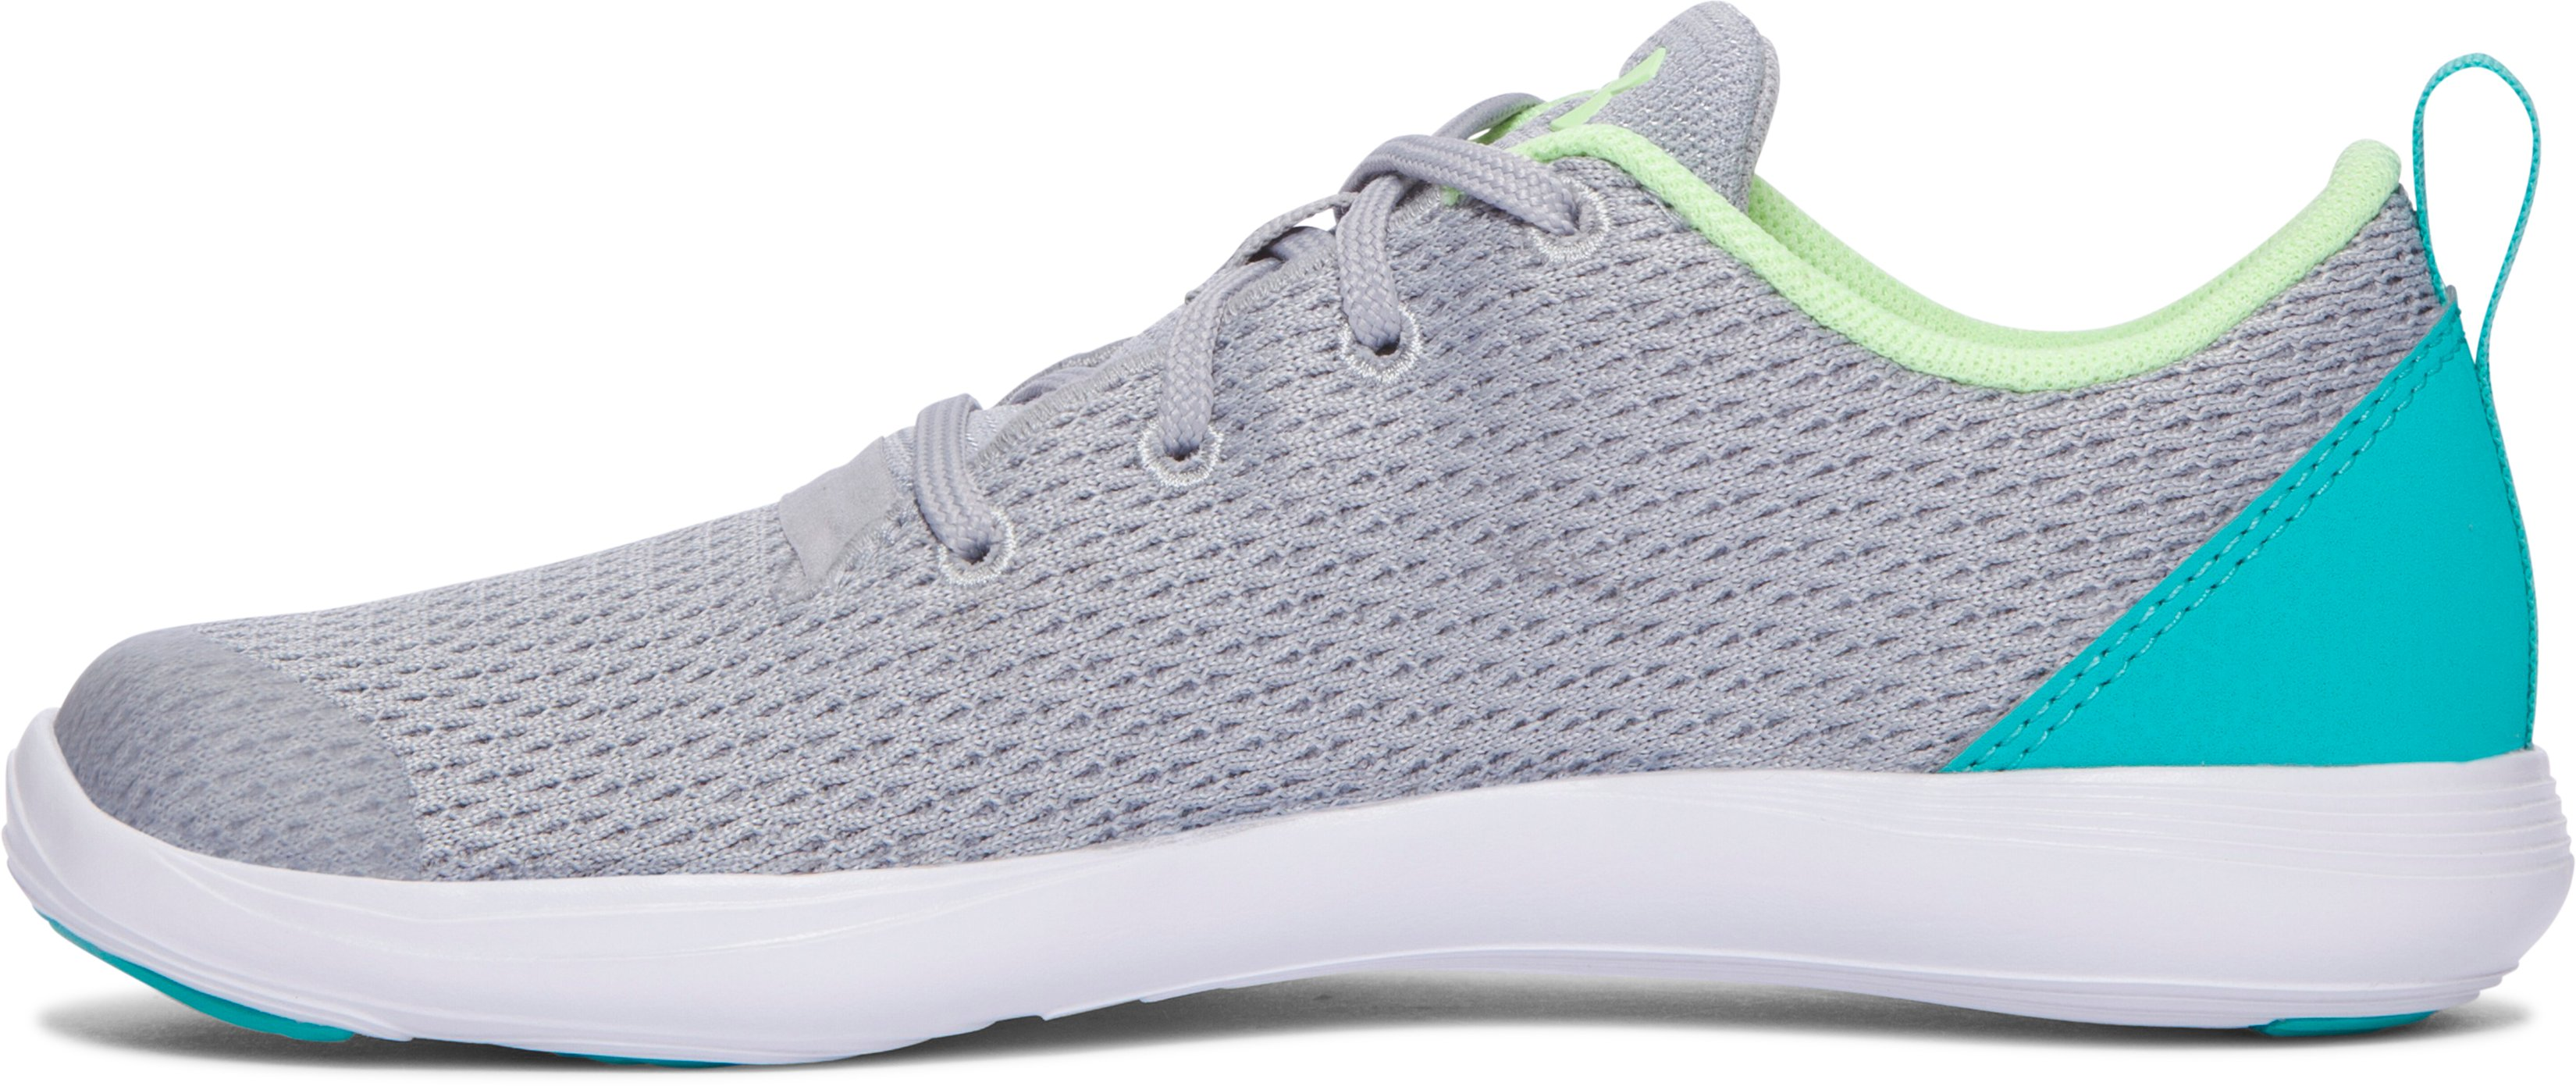 Girls' Pre-School UA Street Precision Sport Low Shoes, OVERCAST GRAY, undefined